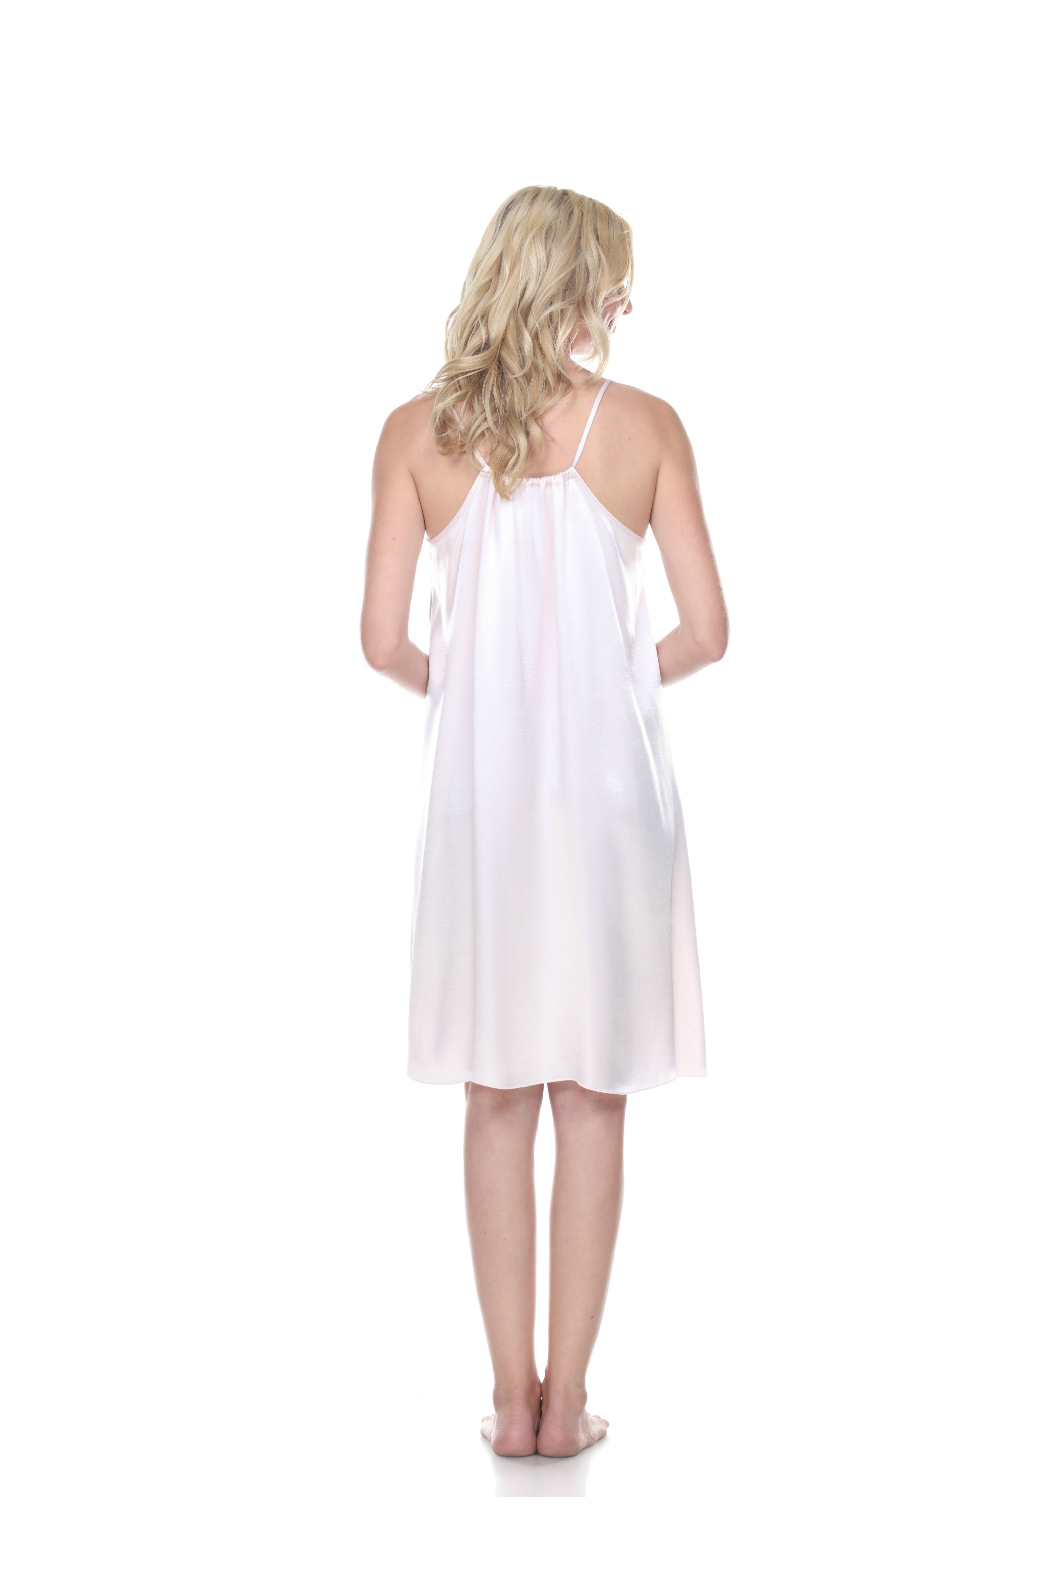 PJHARLOW RUBY Satin Nightgown With Spaghetti Strap And Gathered Back - Front Full Image